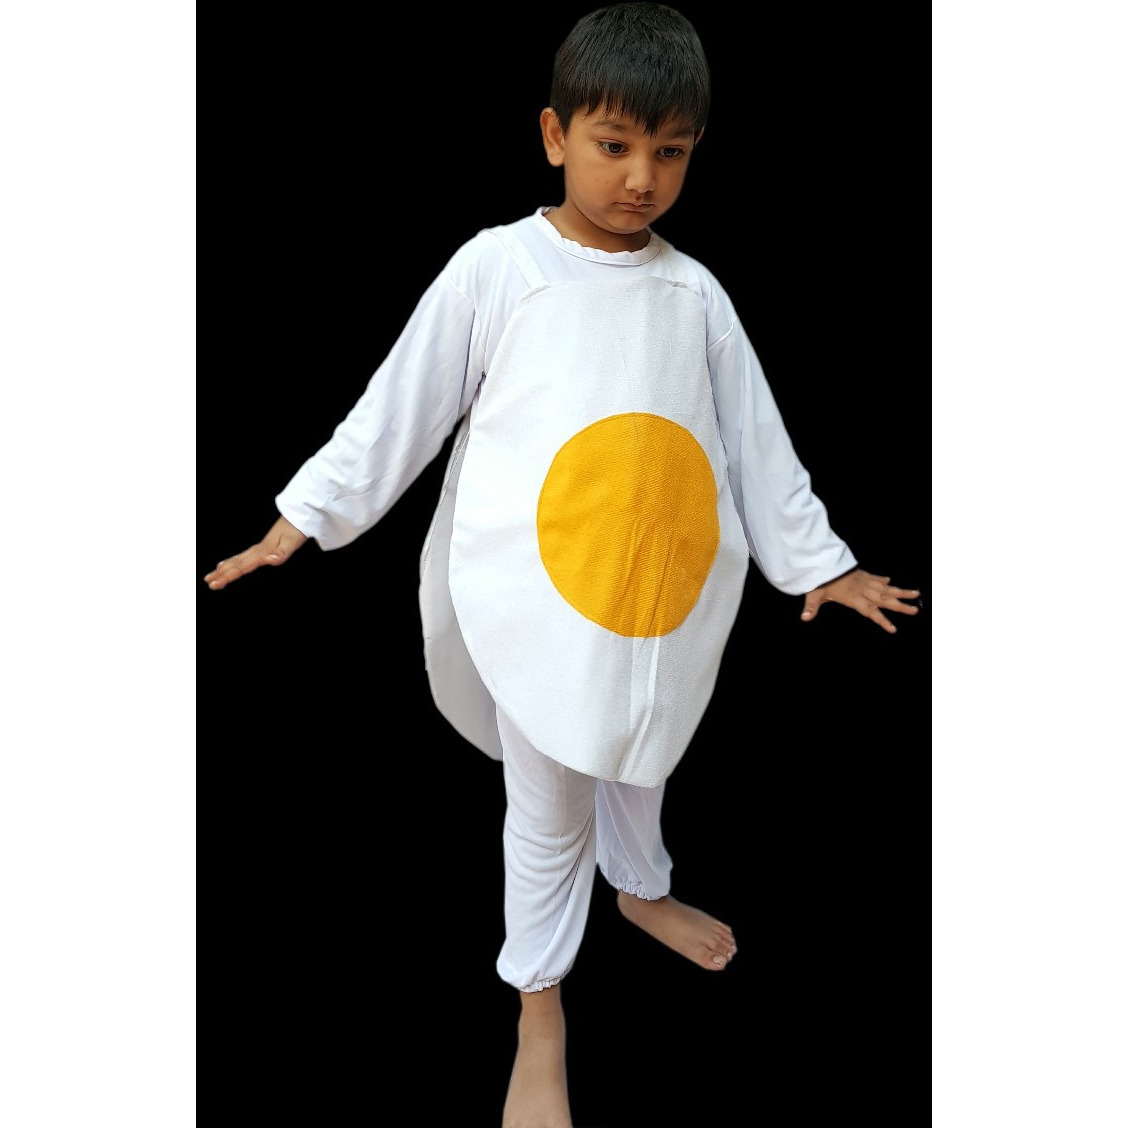 KFD Egg  fancy dress for kids,Costume of vegetable for Annual function/Theme Party/Competition/Stage Shows/Birthday Party Dress